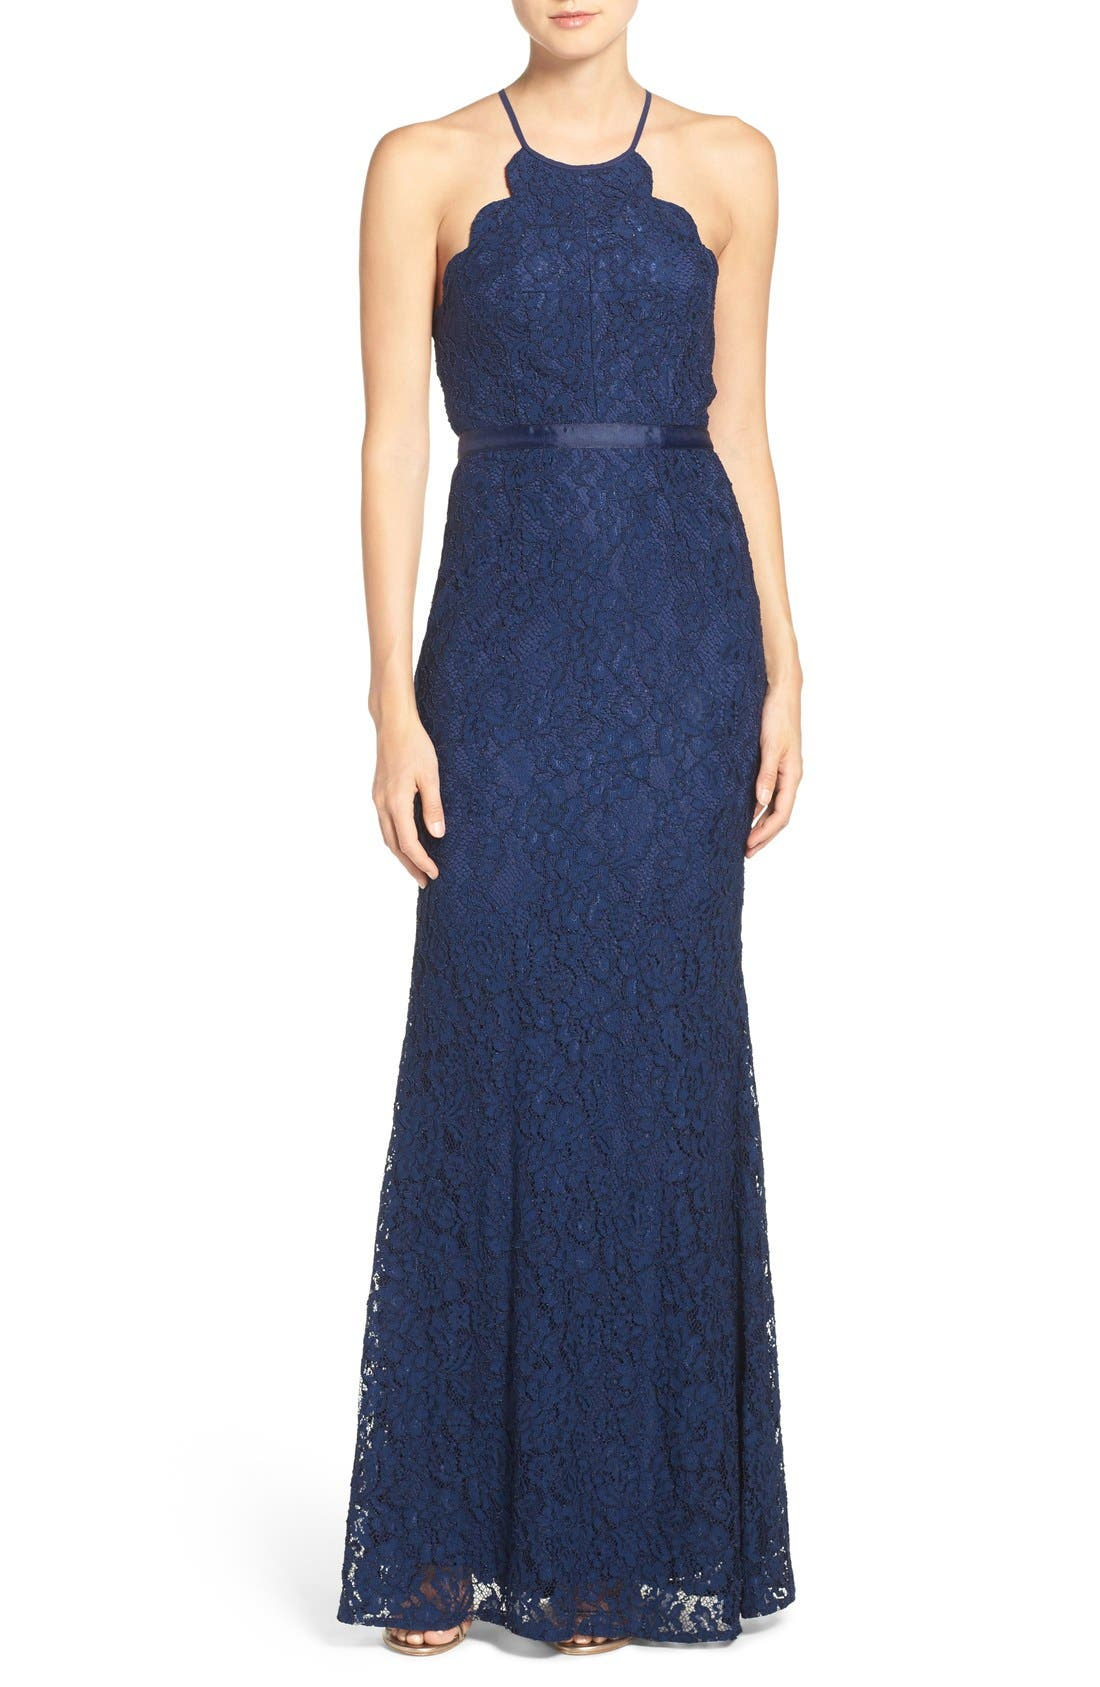 Spaghetti Strap Scallop Lace Mermaid Gown,                             Main thumbnail 1, color,                             Navy